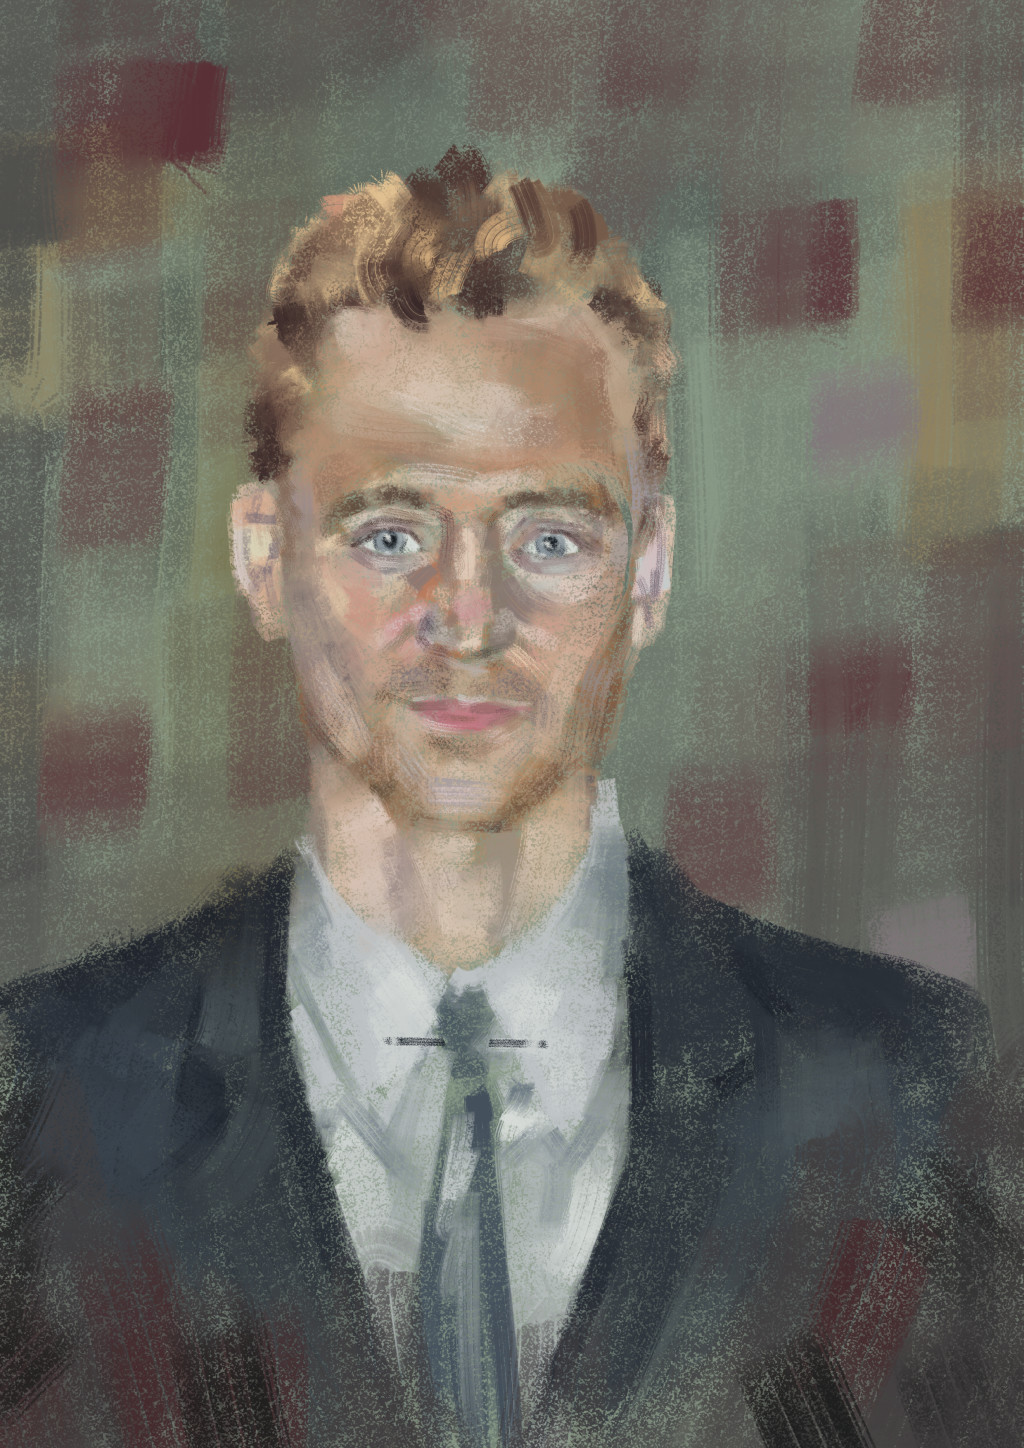 Robert shea tom hiddleston 02r